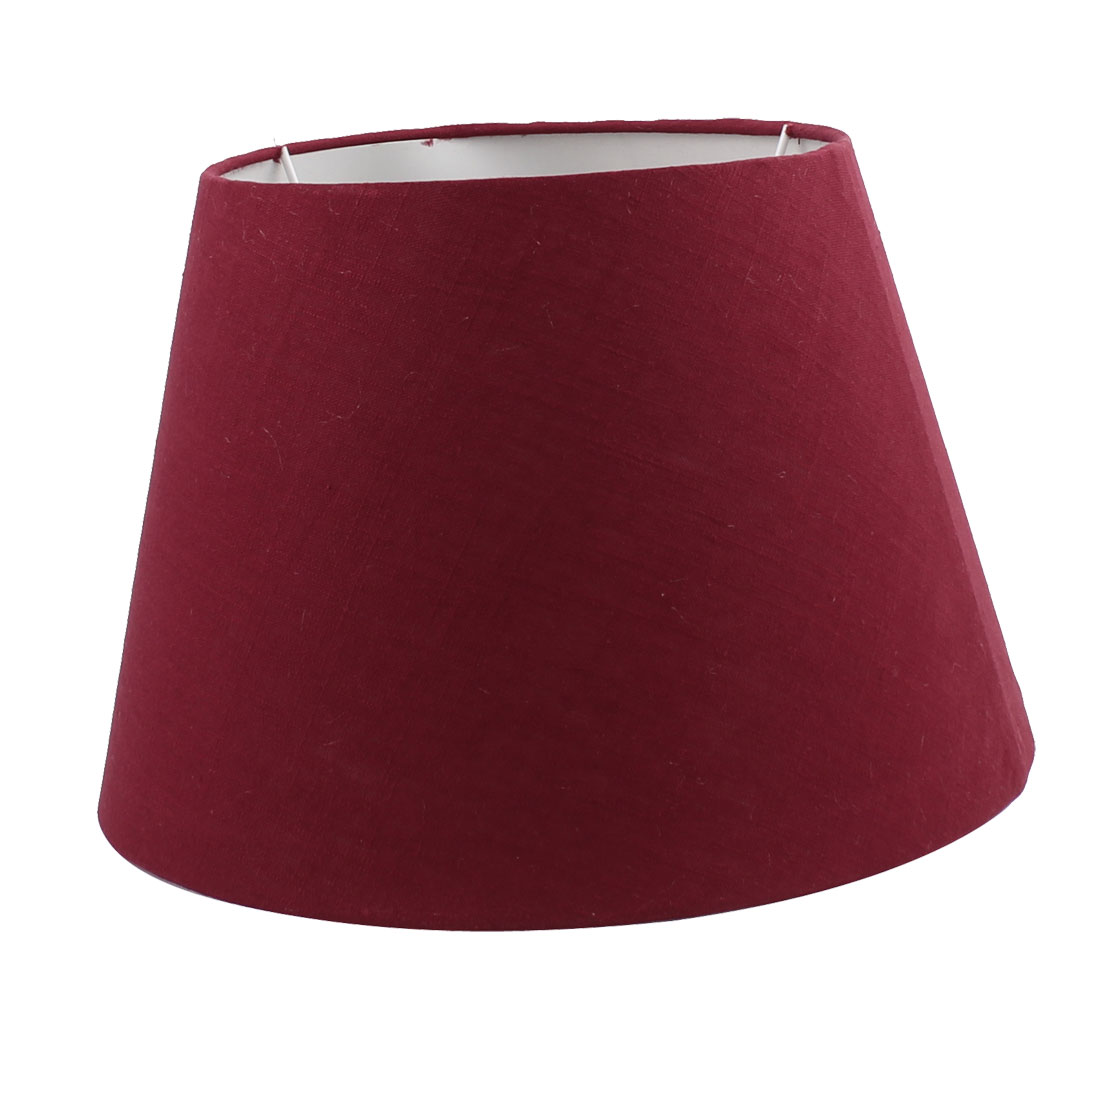 200mmx300mmx200mm Dark Red Lamp Cover for Home Office Student Reading Lamp